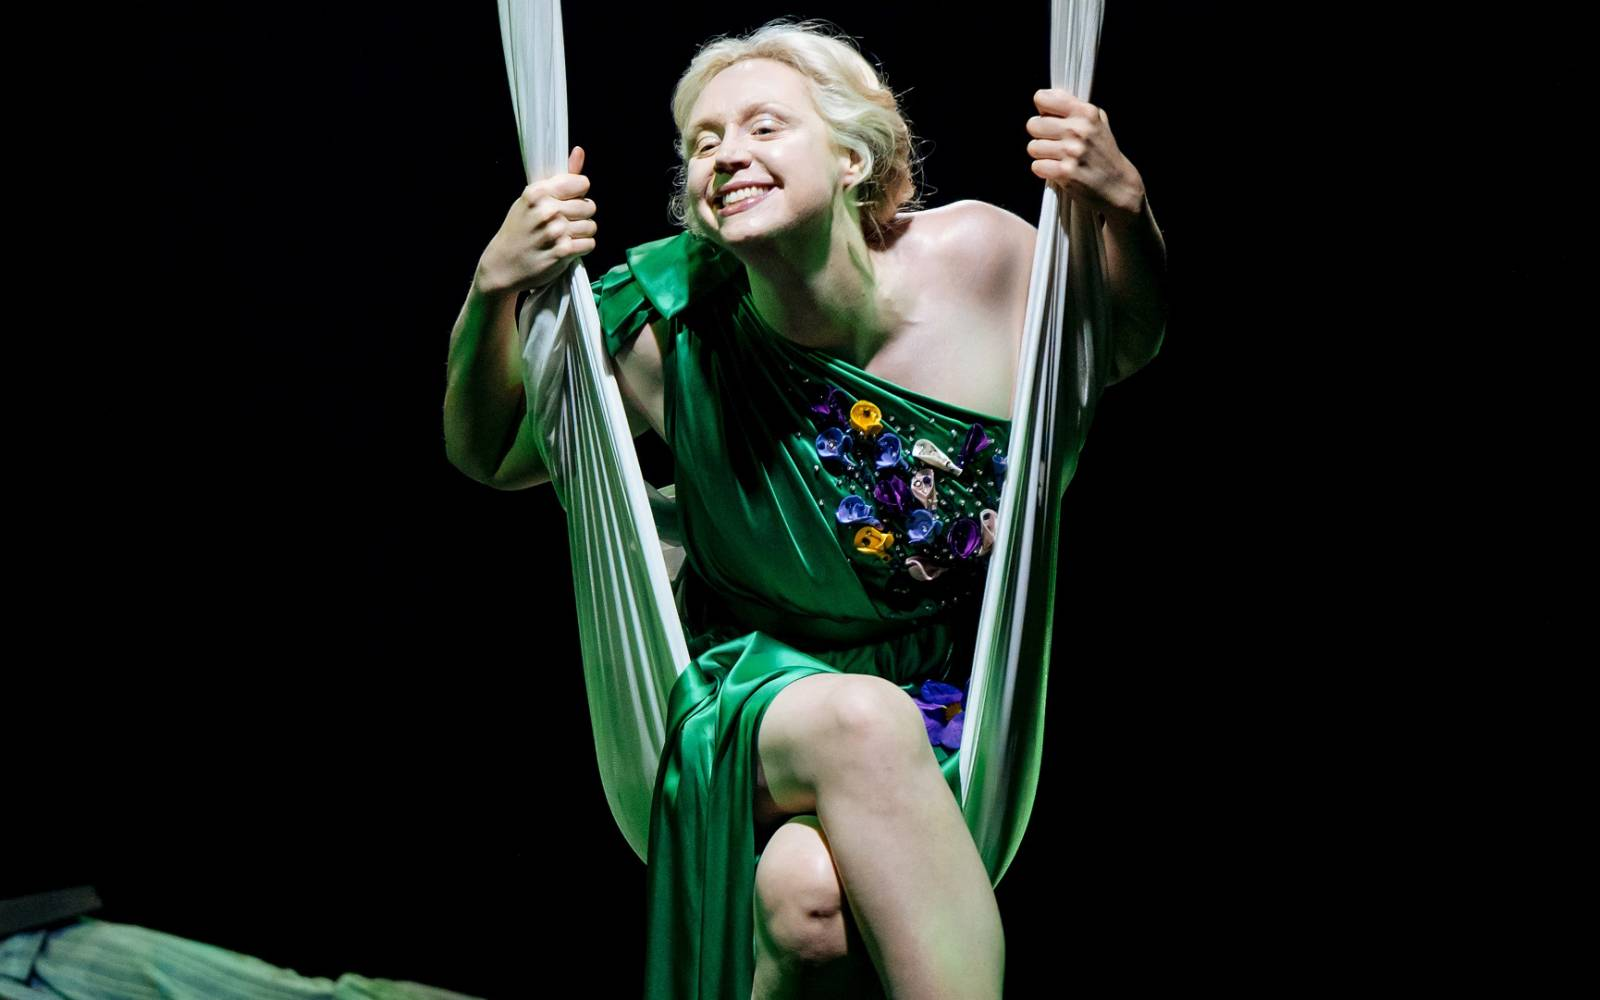 Gwendoline Christie (Titania) swings on a length of silk, with a cheeky grin